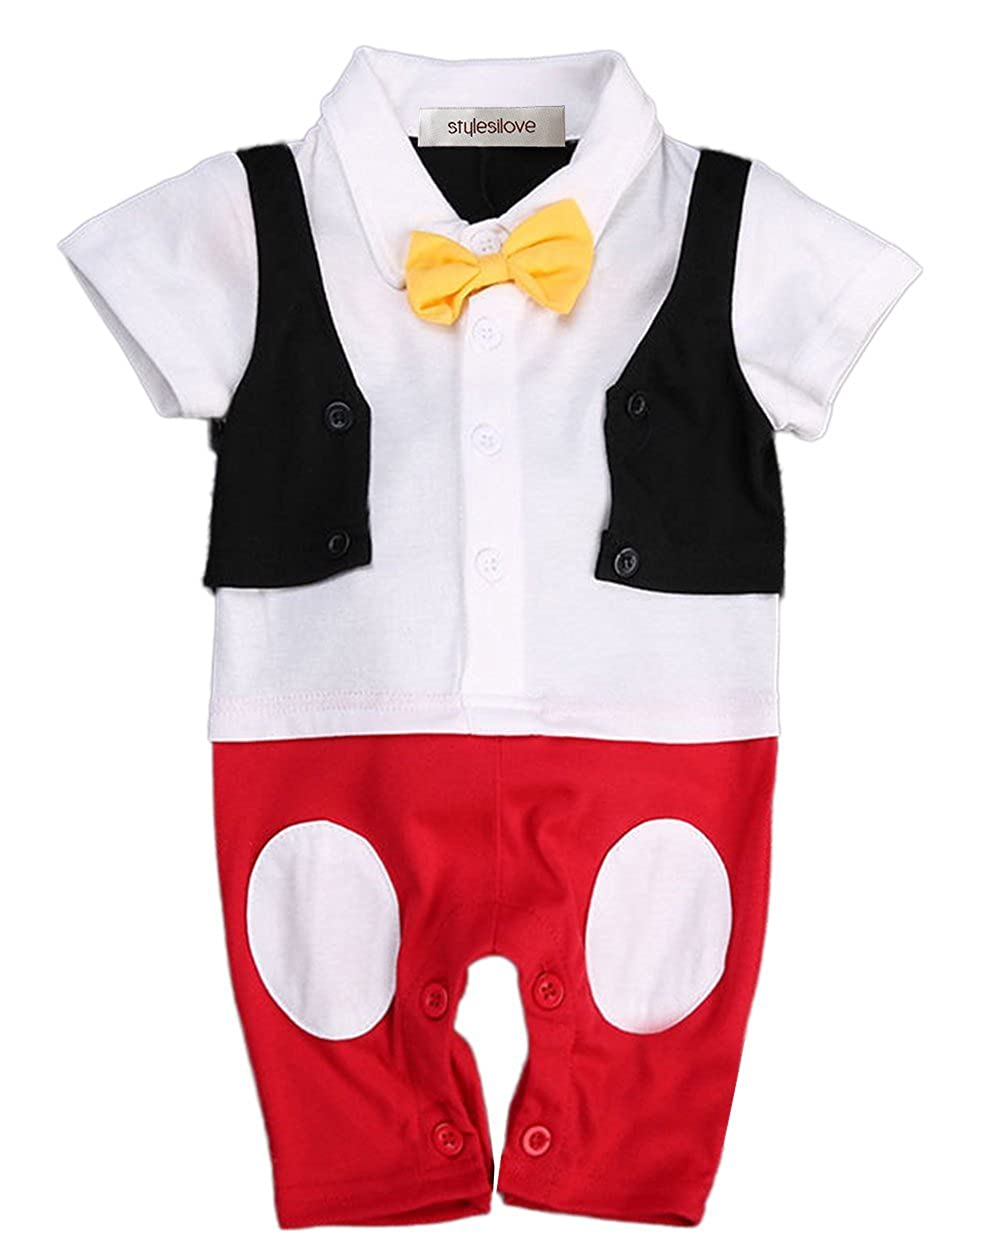 StylesILove Baby Boy Bowtie Cartoon Photo Prop Romper Onesie BC0024